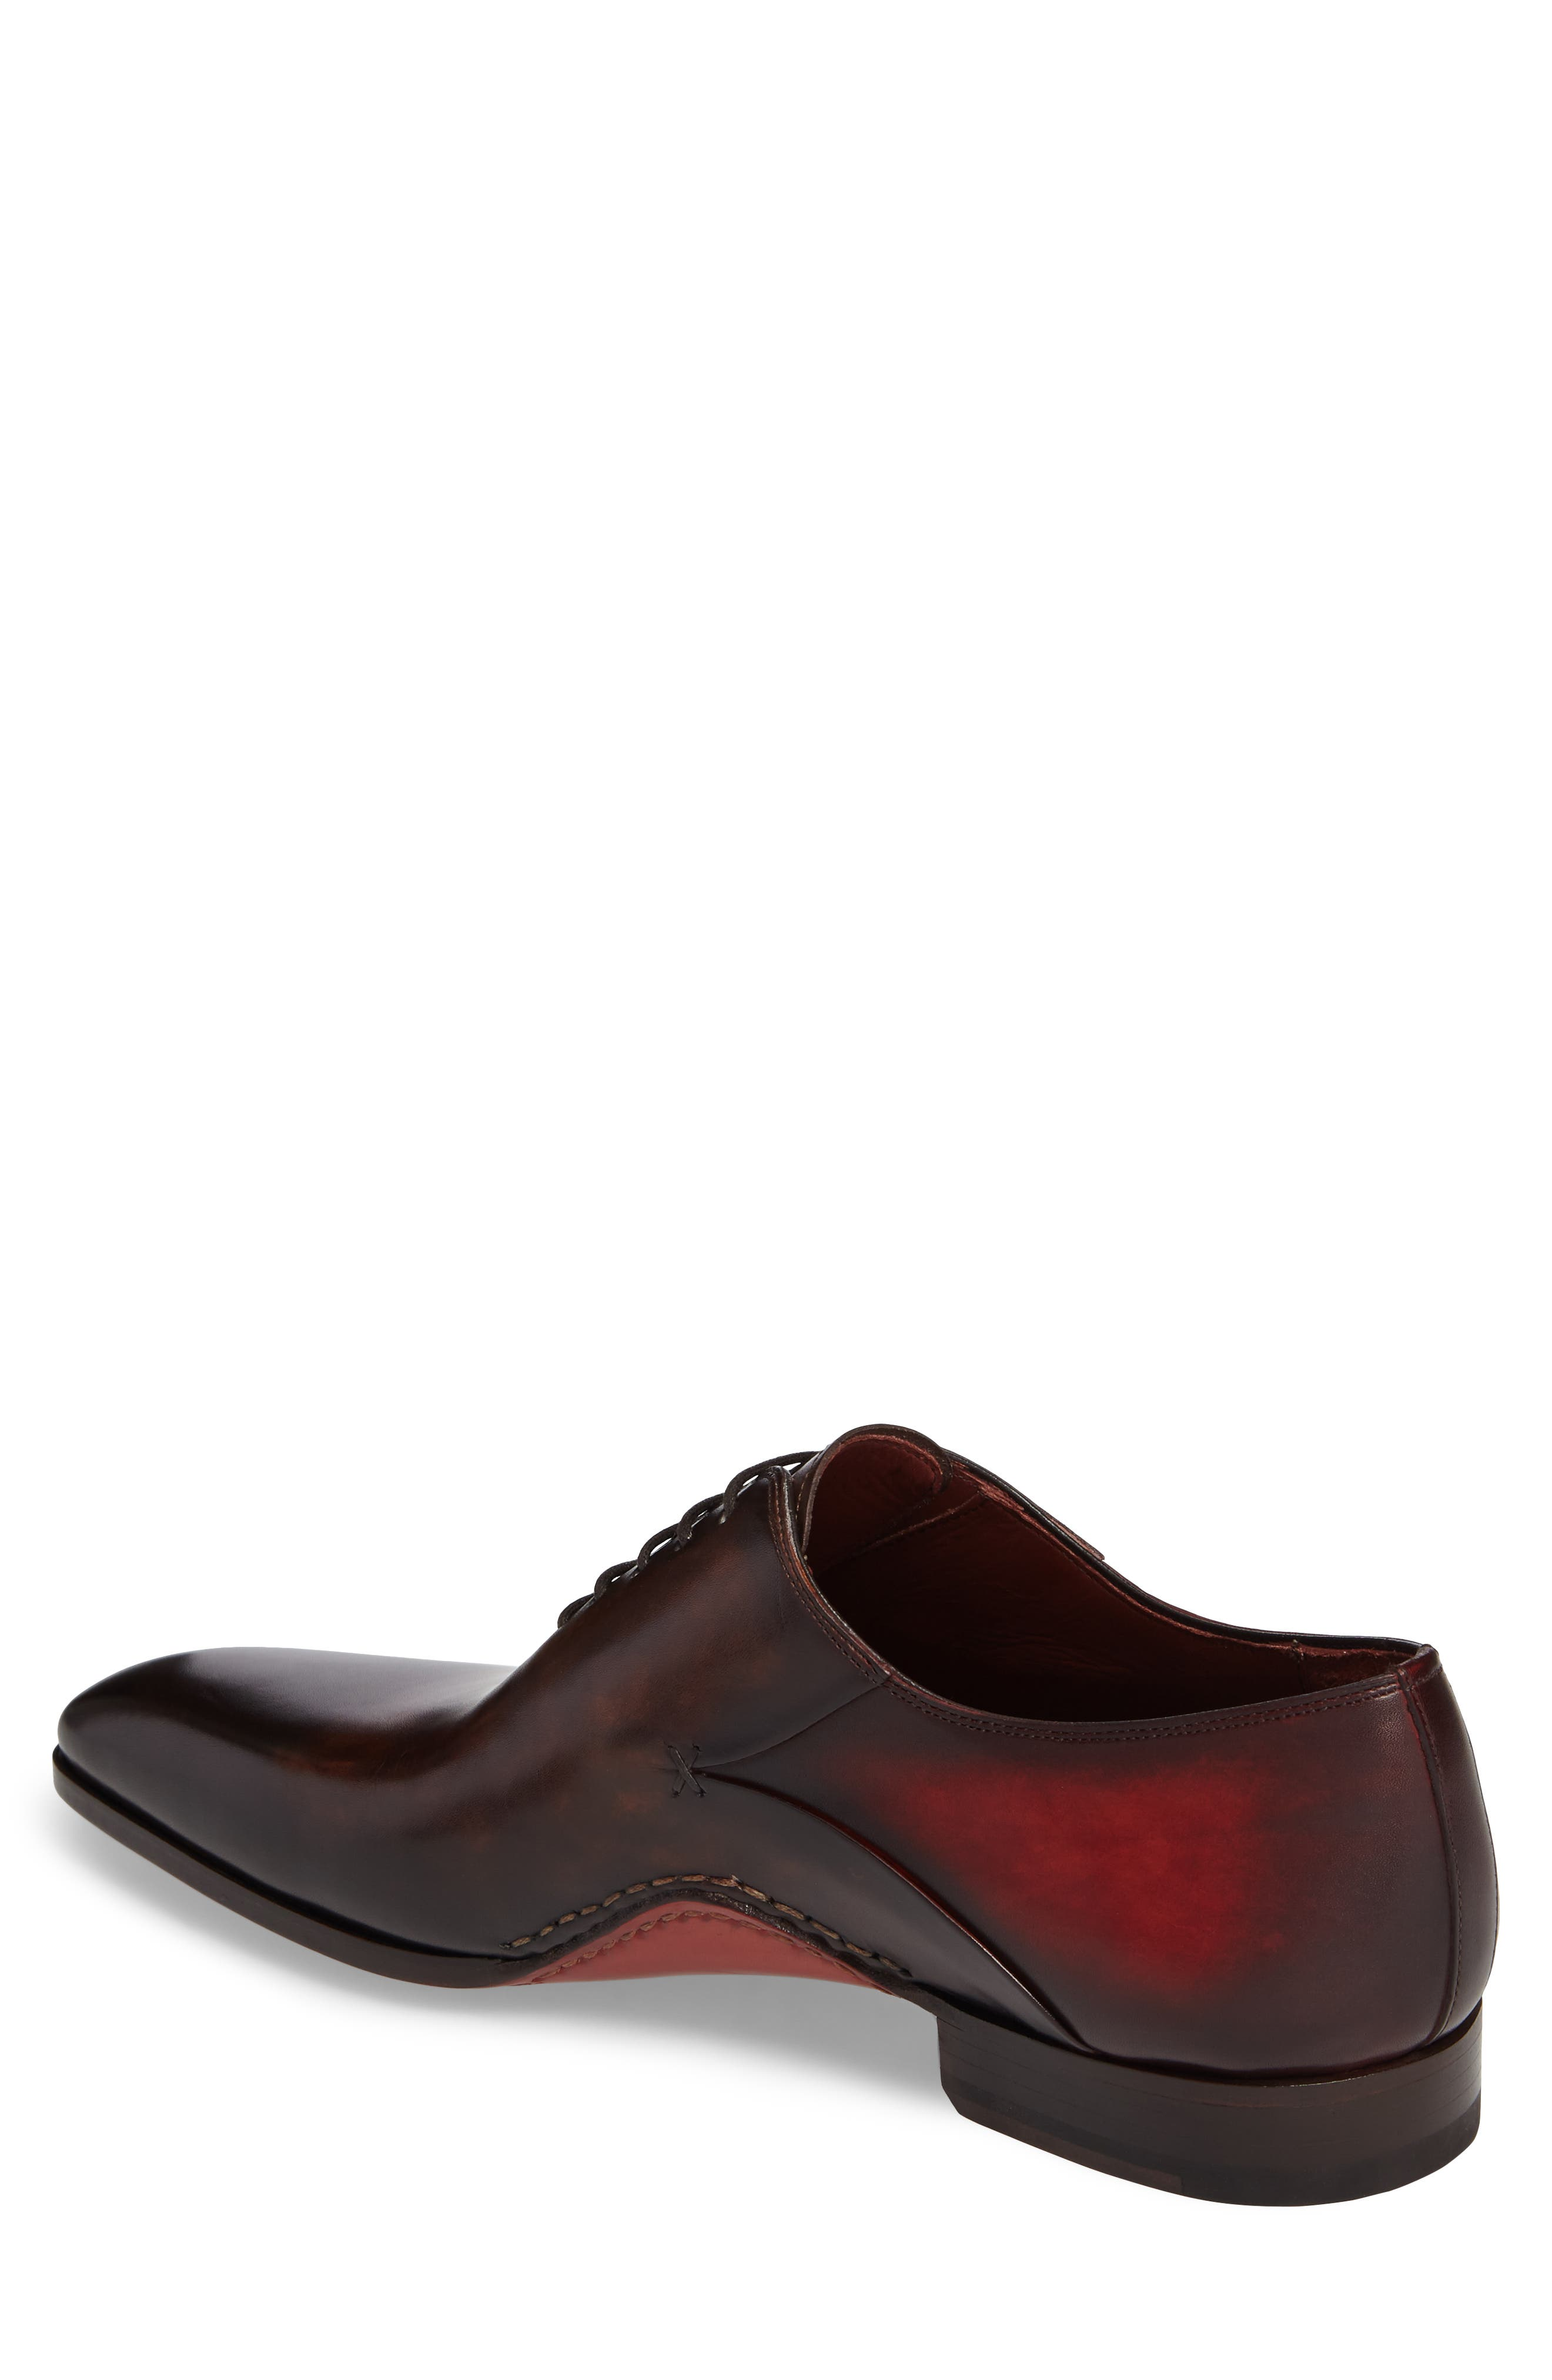 Cantabria Plain Toe Oxford,                             Alternate thumbnail 2, color,                             BROWN/ RED LEATHER